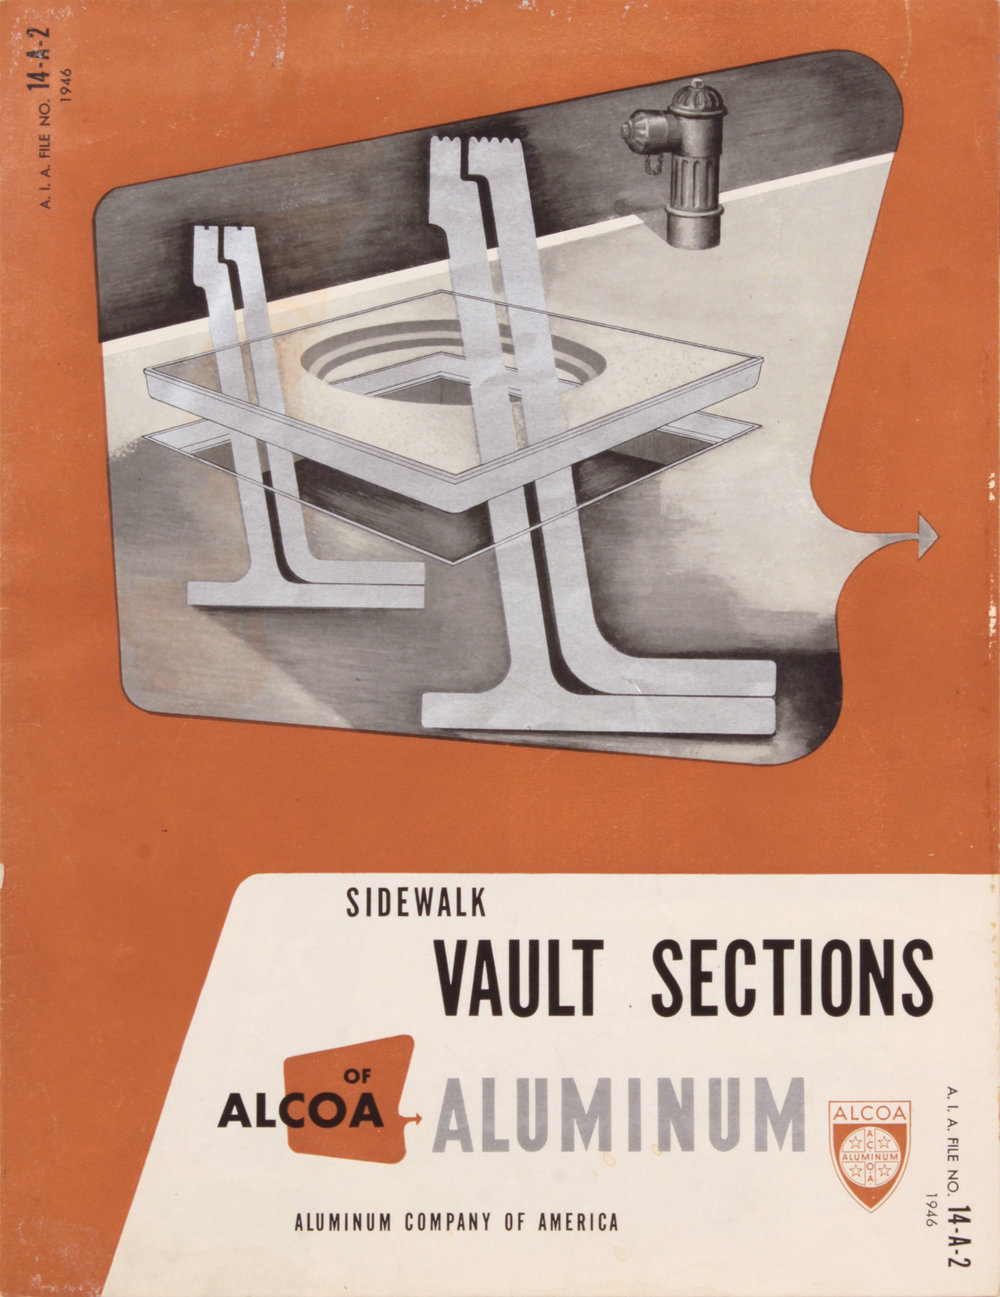 9. 1946, Alcoa Aluminum, Sidewalk Vault Sections, Design by Robert Lepper, Executed partly by Philip Pearlstein, Painting by Philip Pearlstein, 11x8 1:2, PPS 1574.JPG